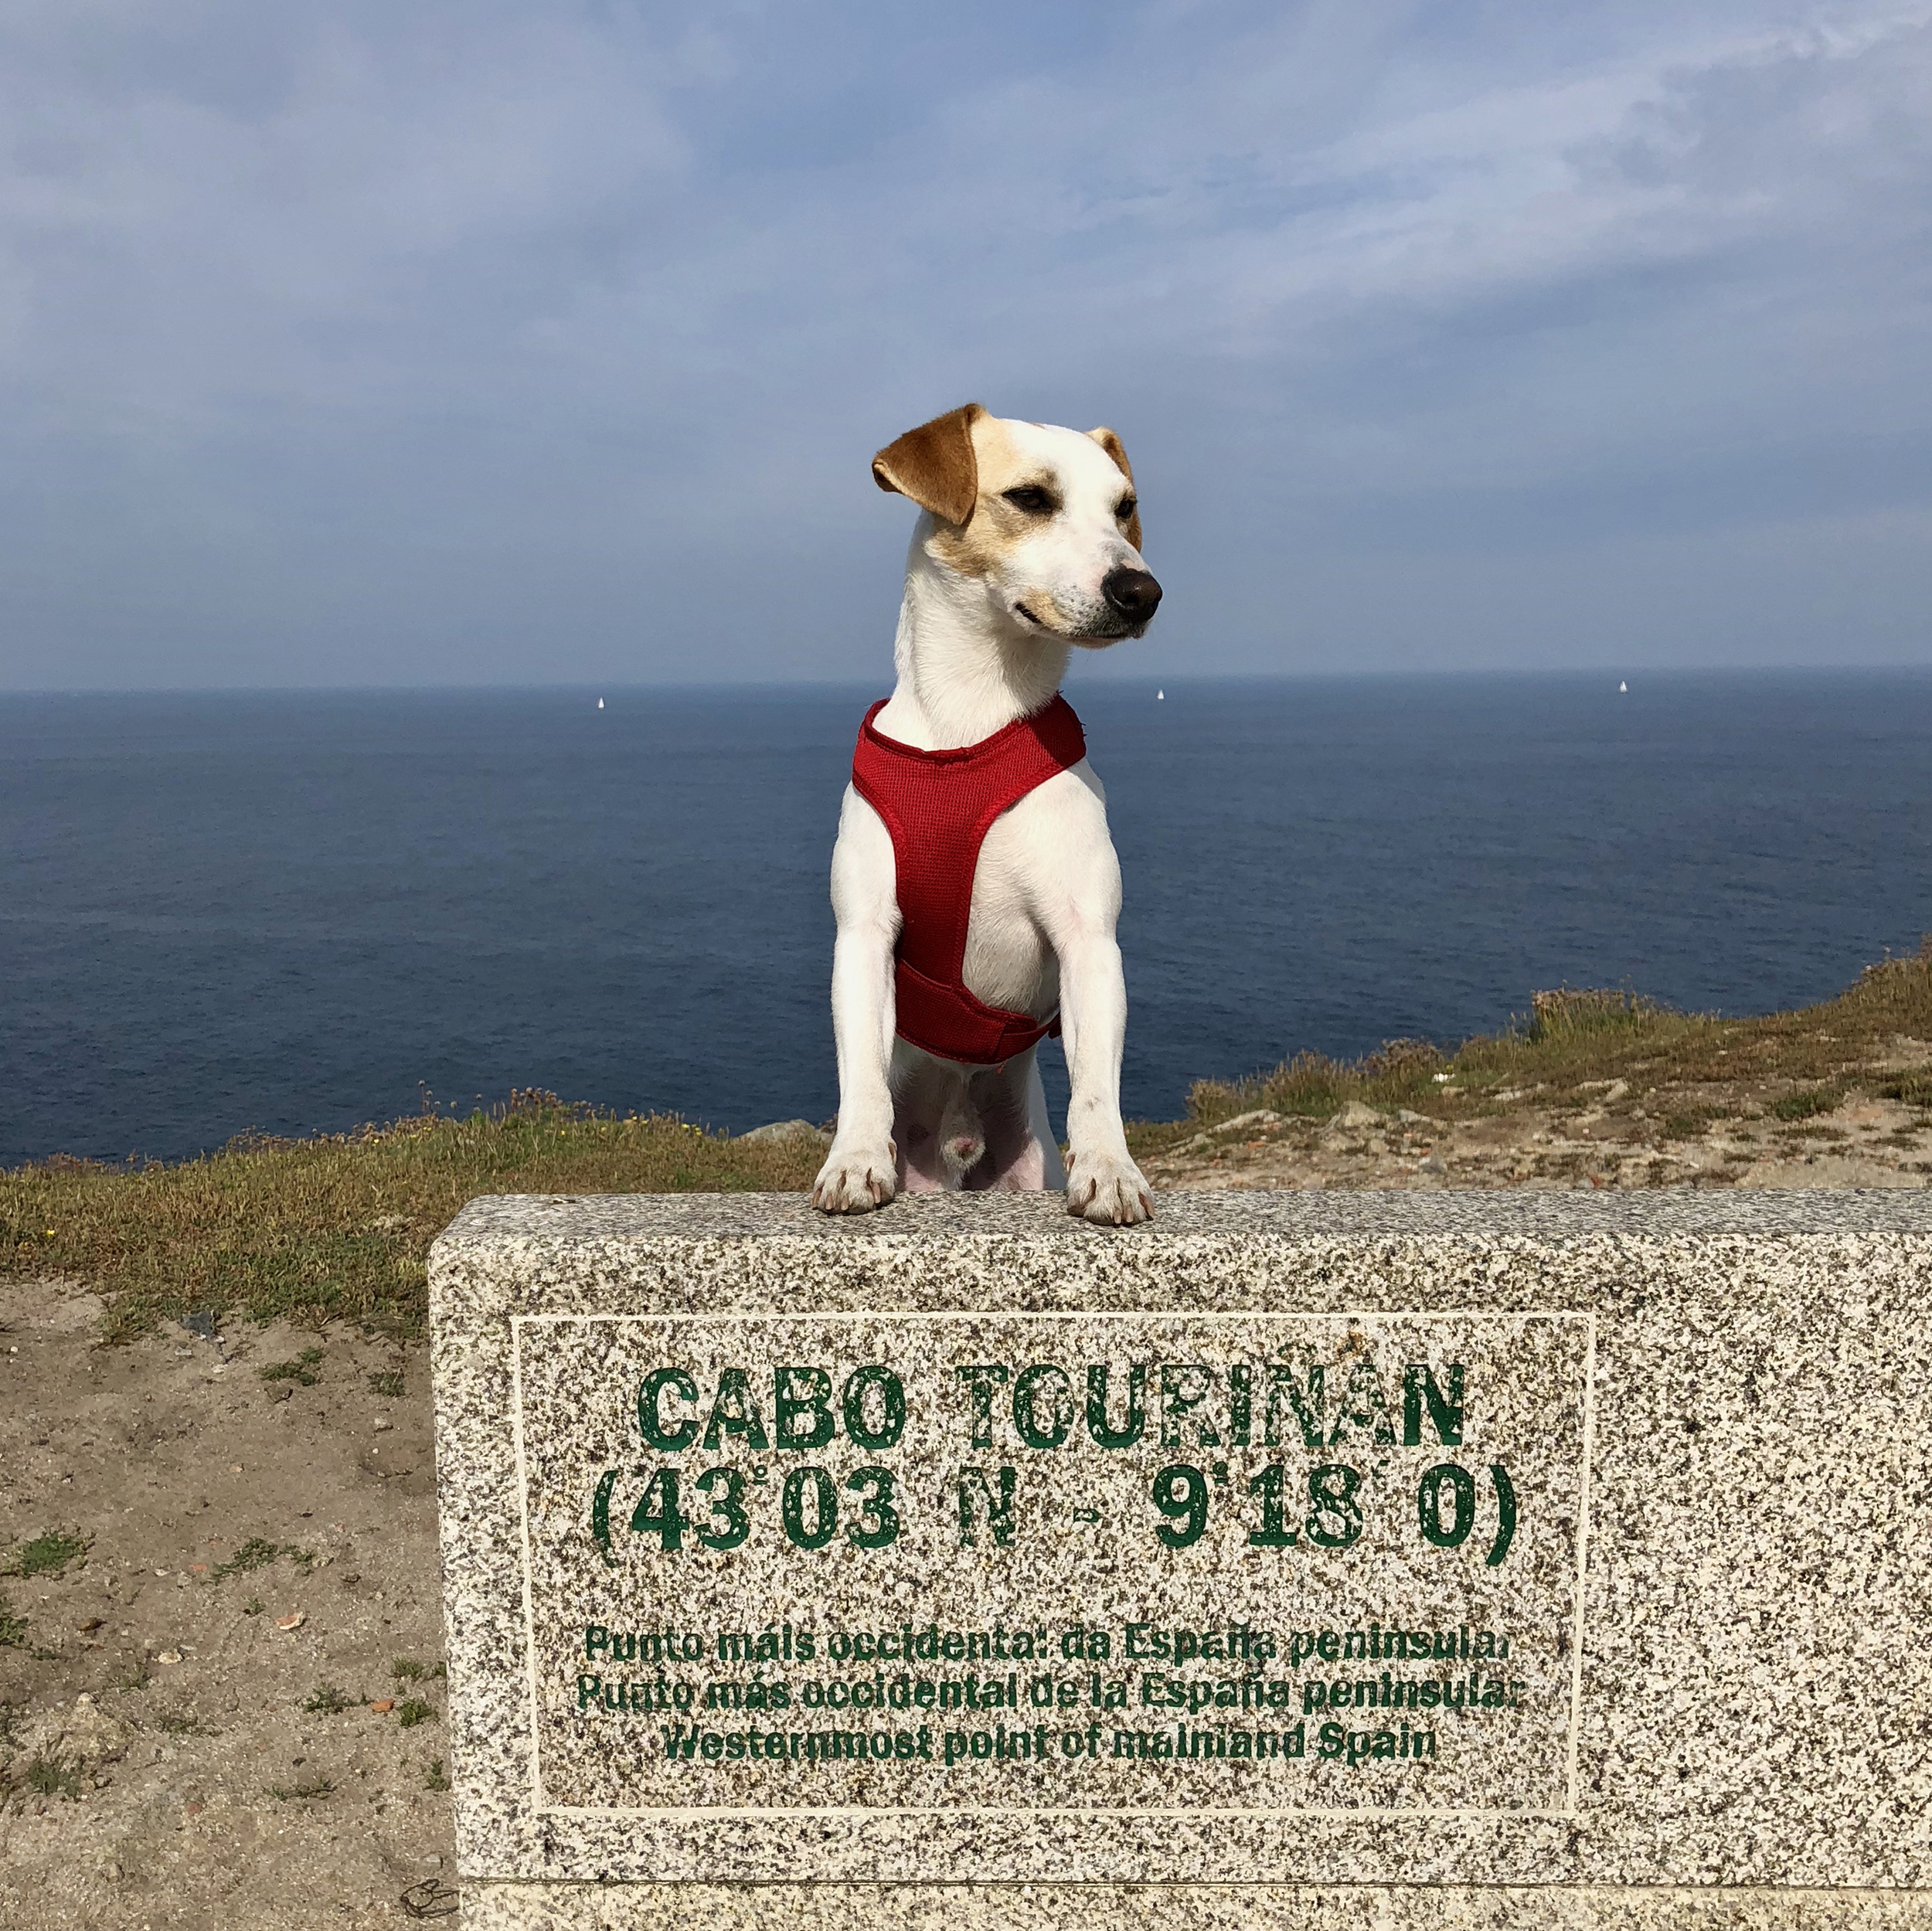 The westernmost point on the Spanish Peninsula.